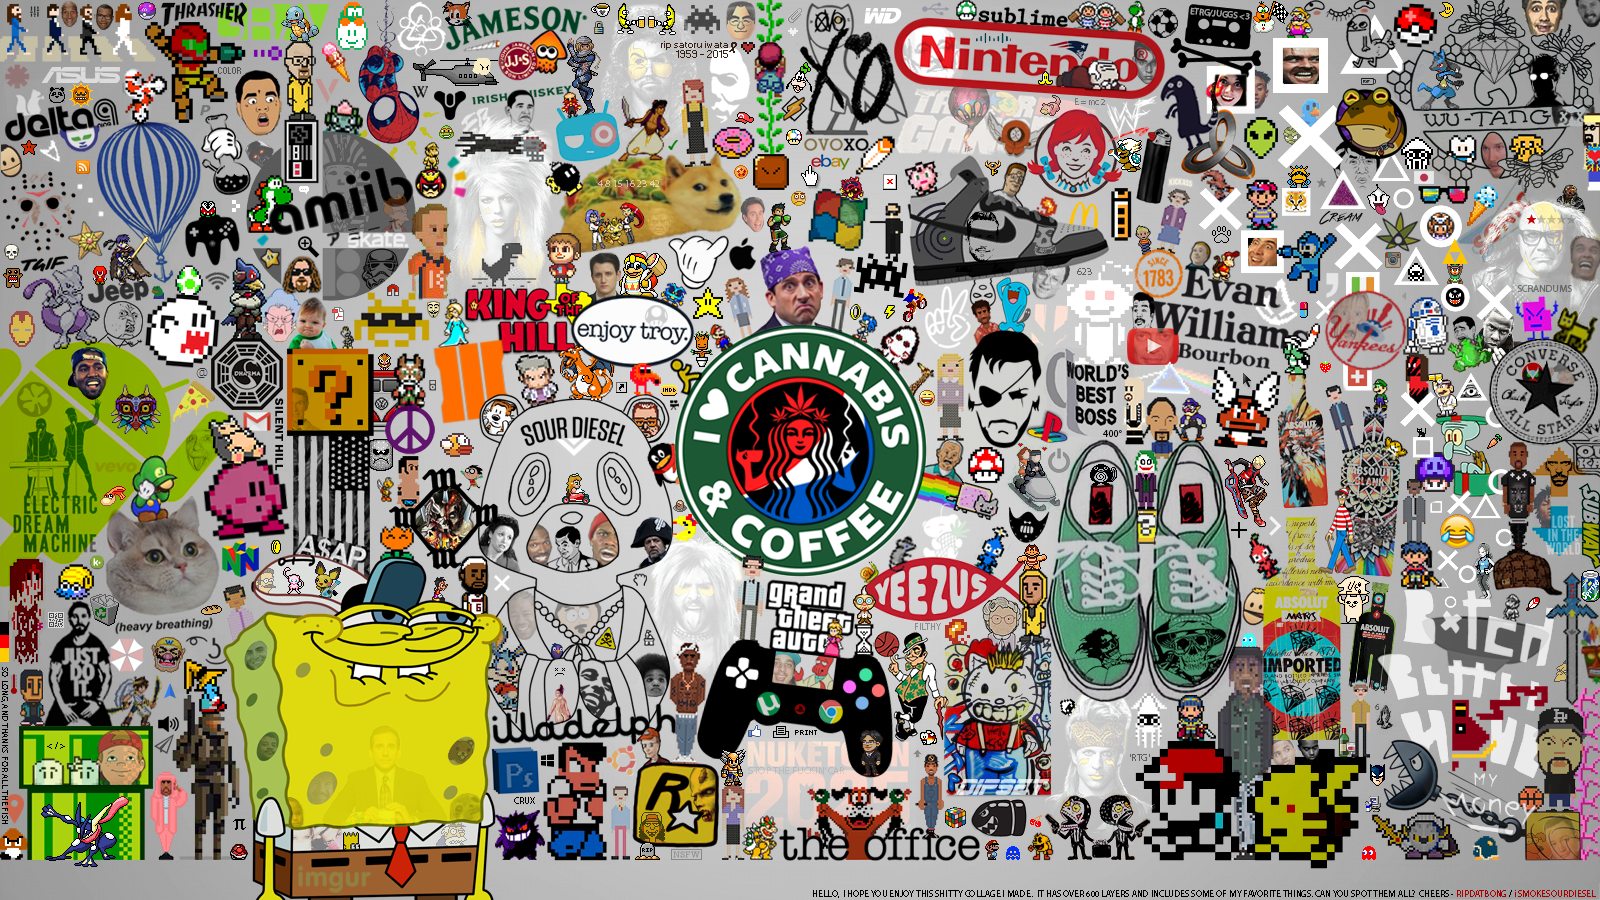 600 layer photoshop wallpaper collage  OC  things I love 1600x900